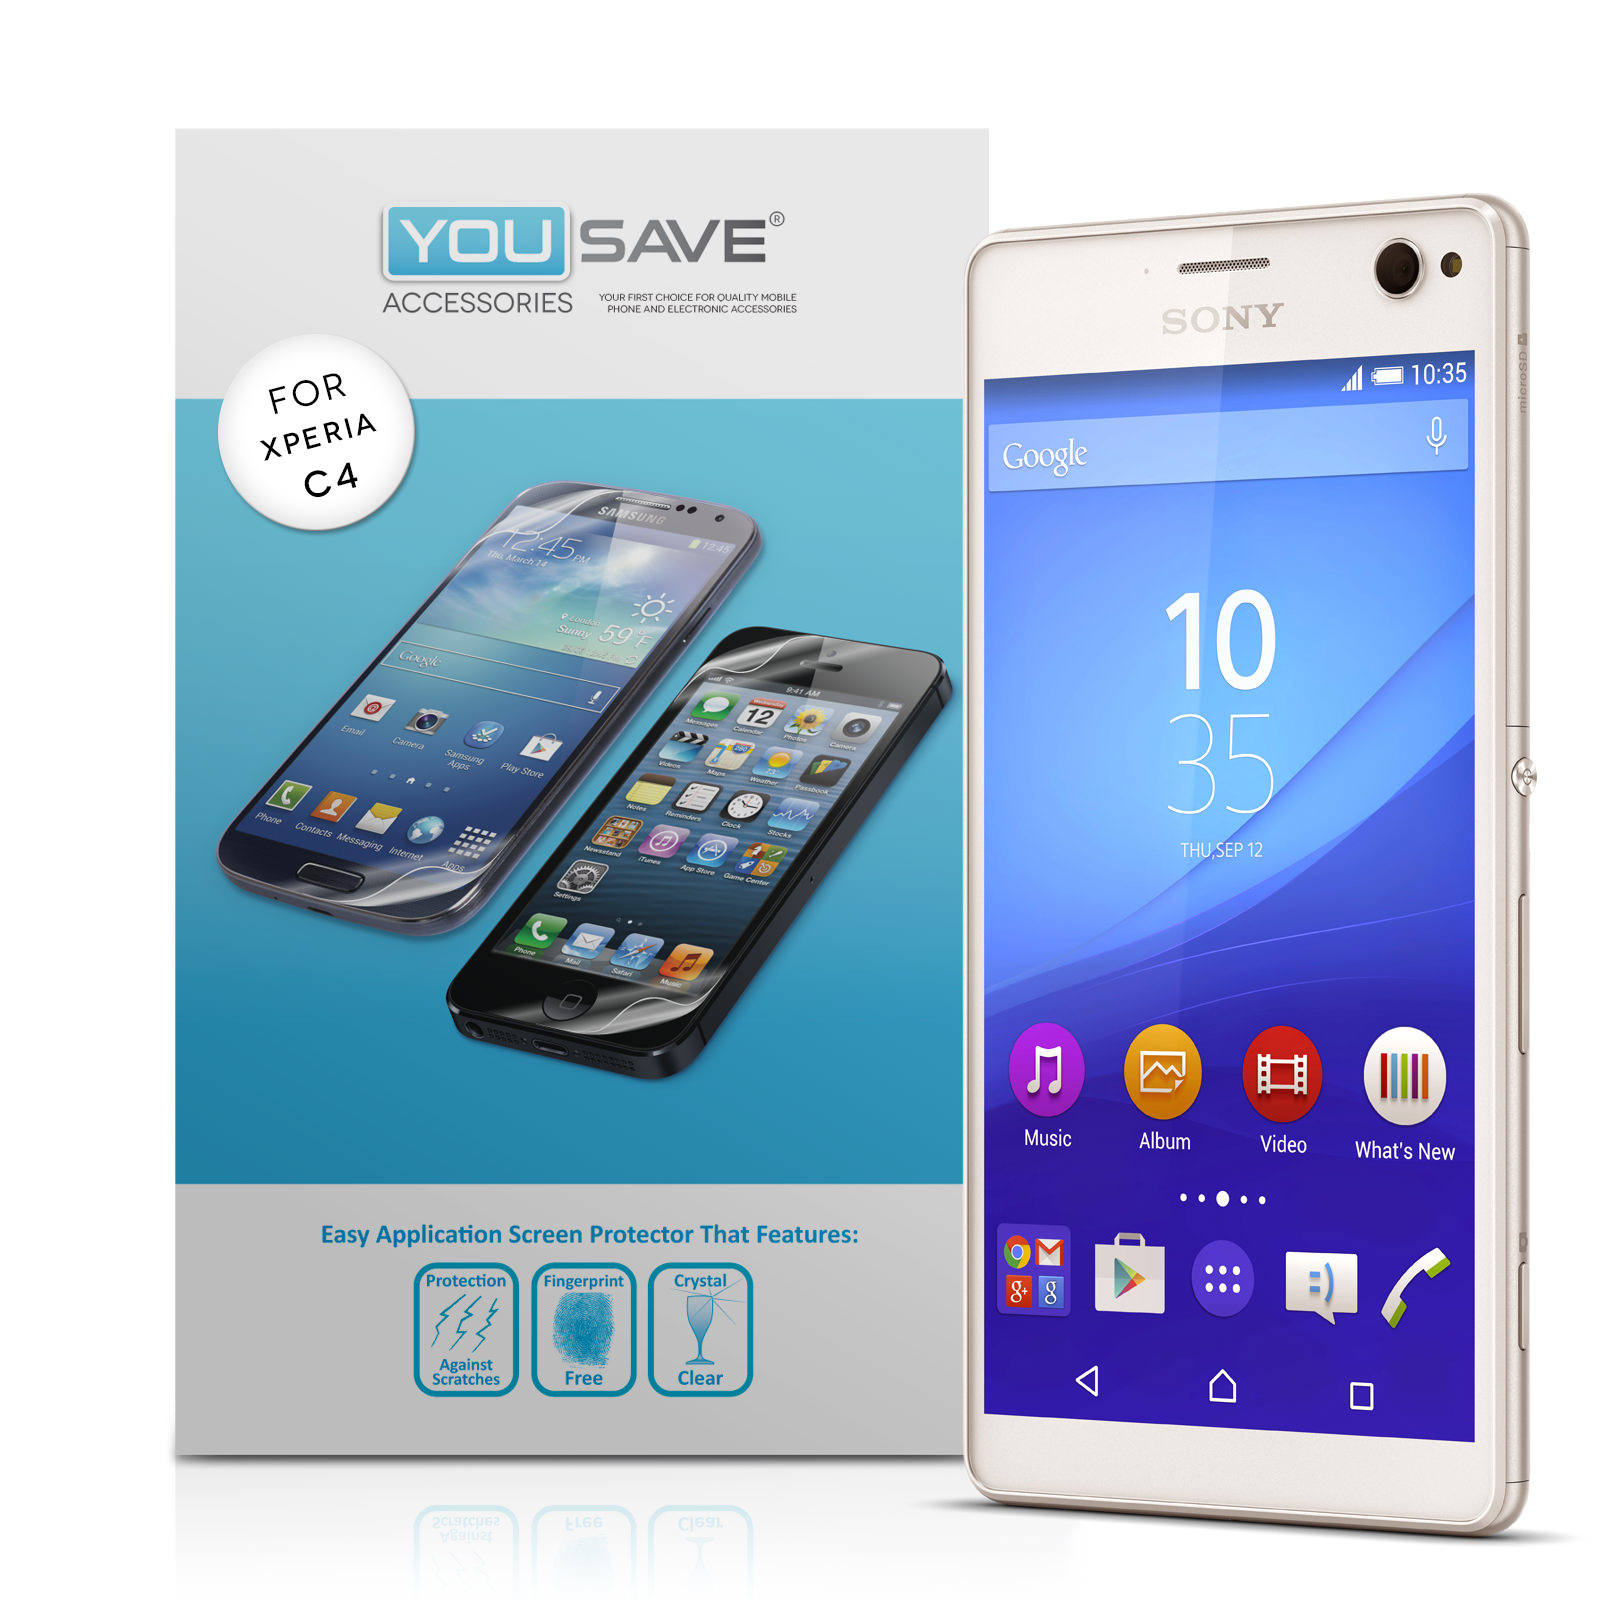 Yousave Accessories Sony Xperia C4 Screen Protectors x3